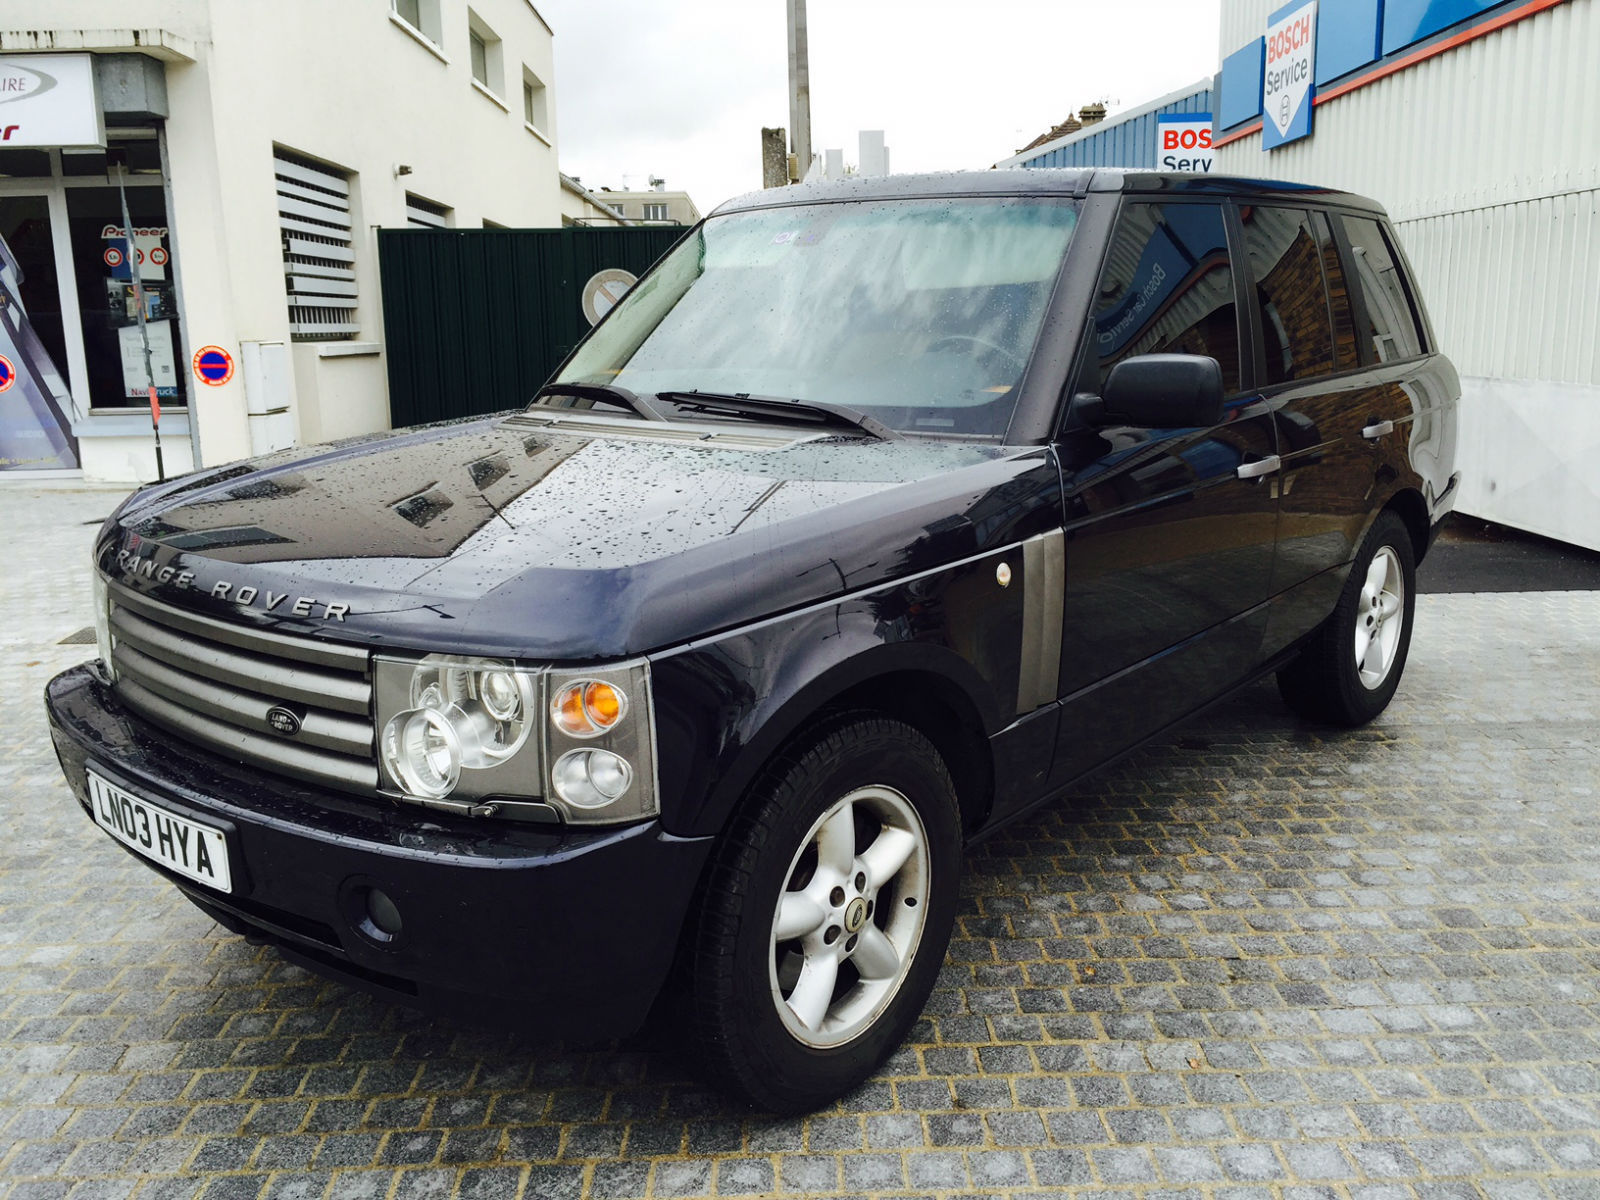 Left Hand Drive Cars For Sale In Uk Land Rover